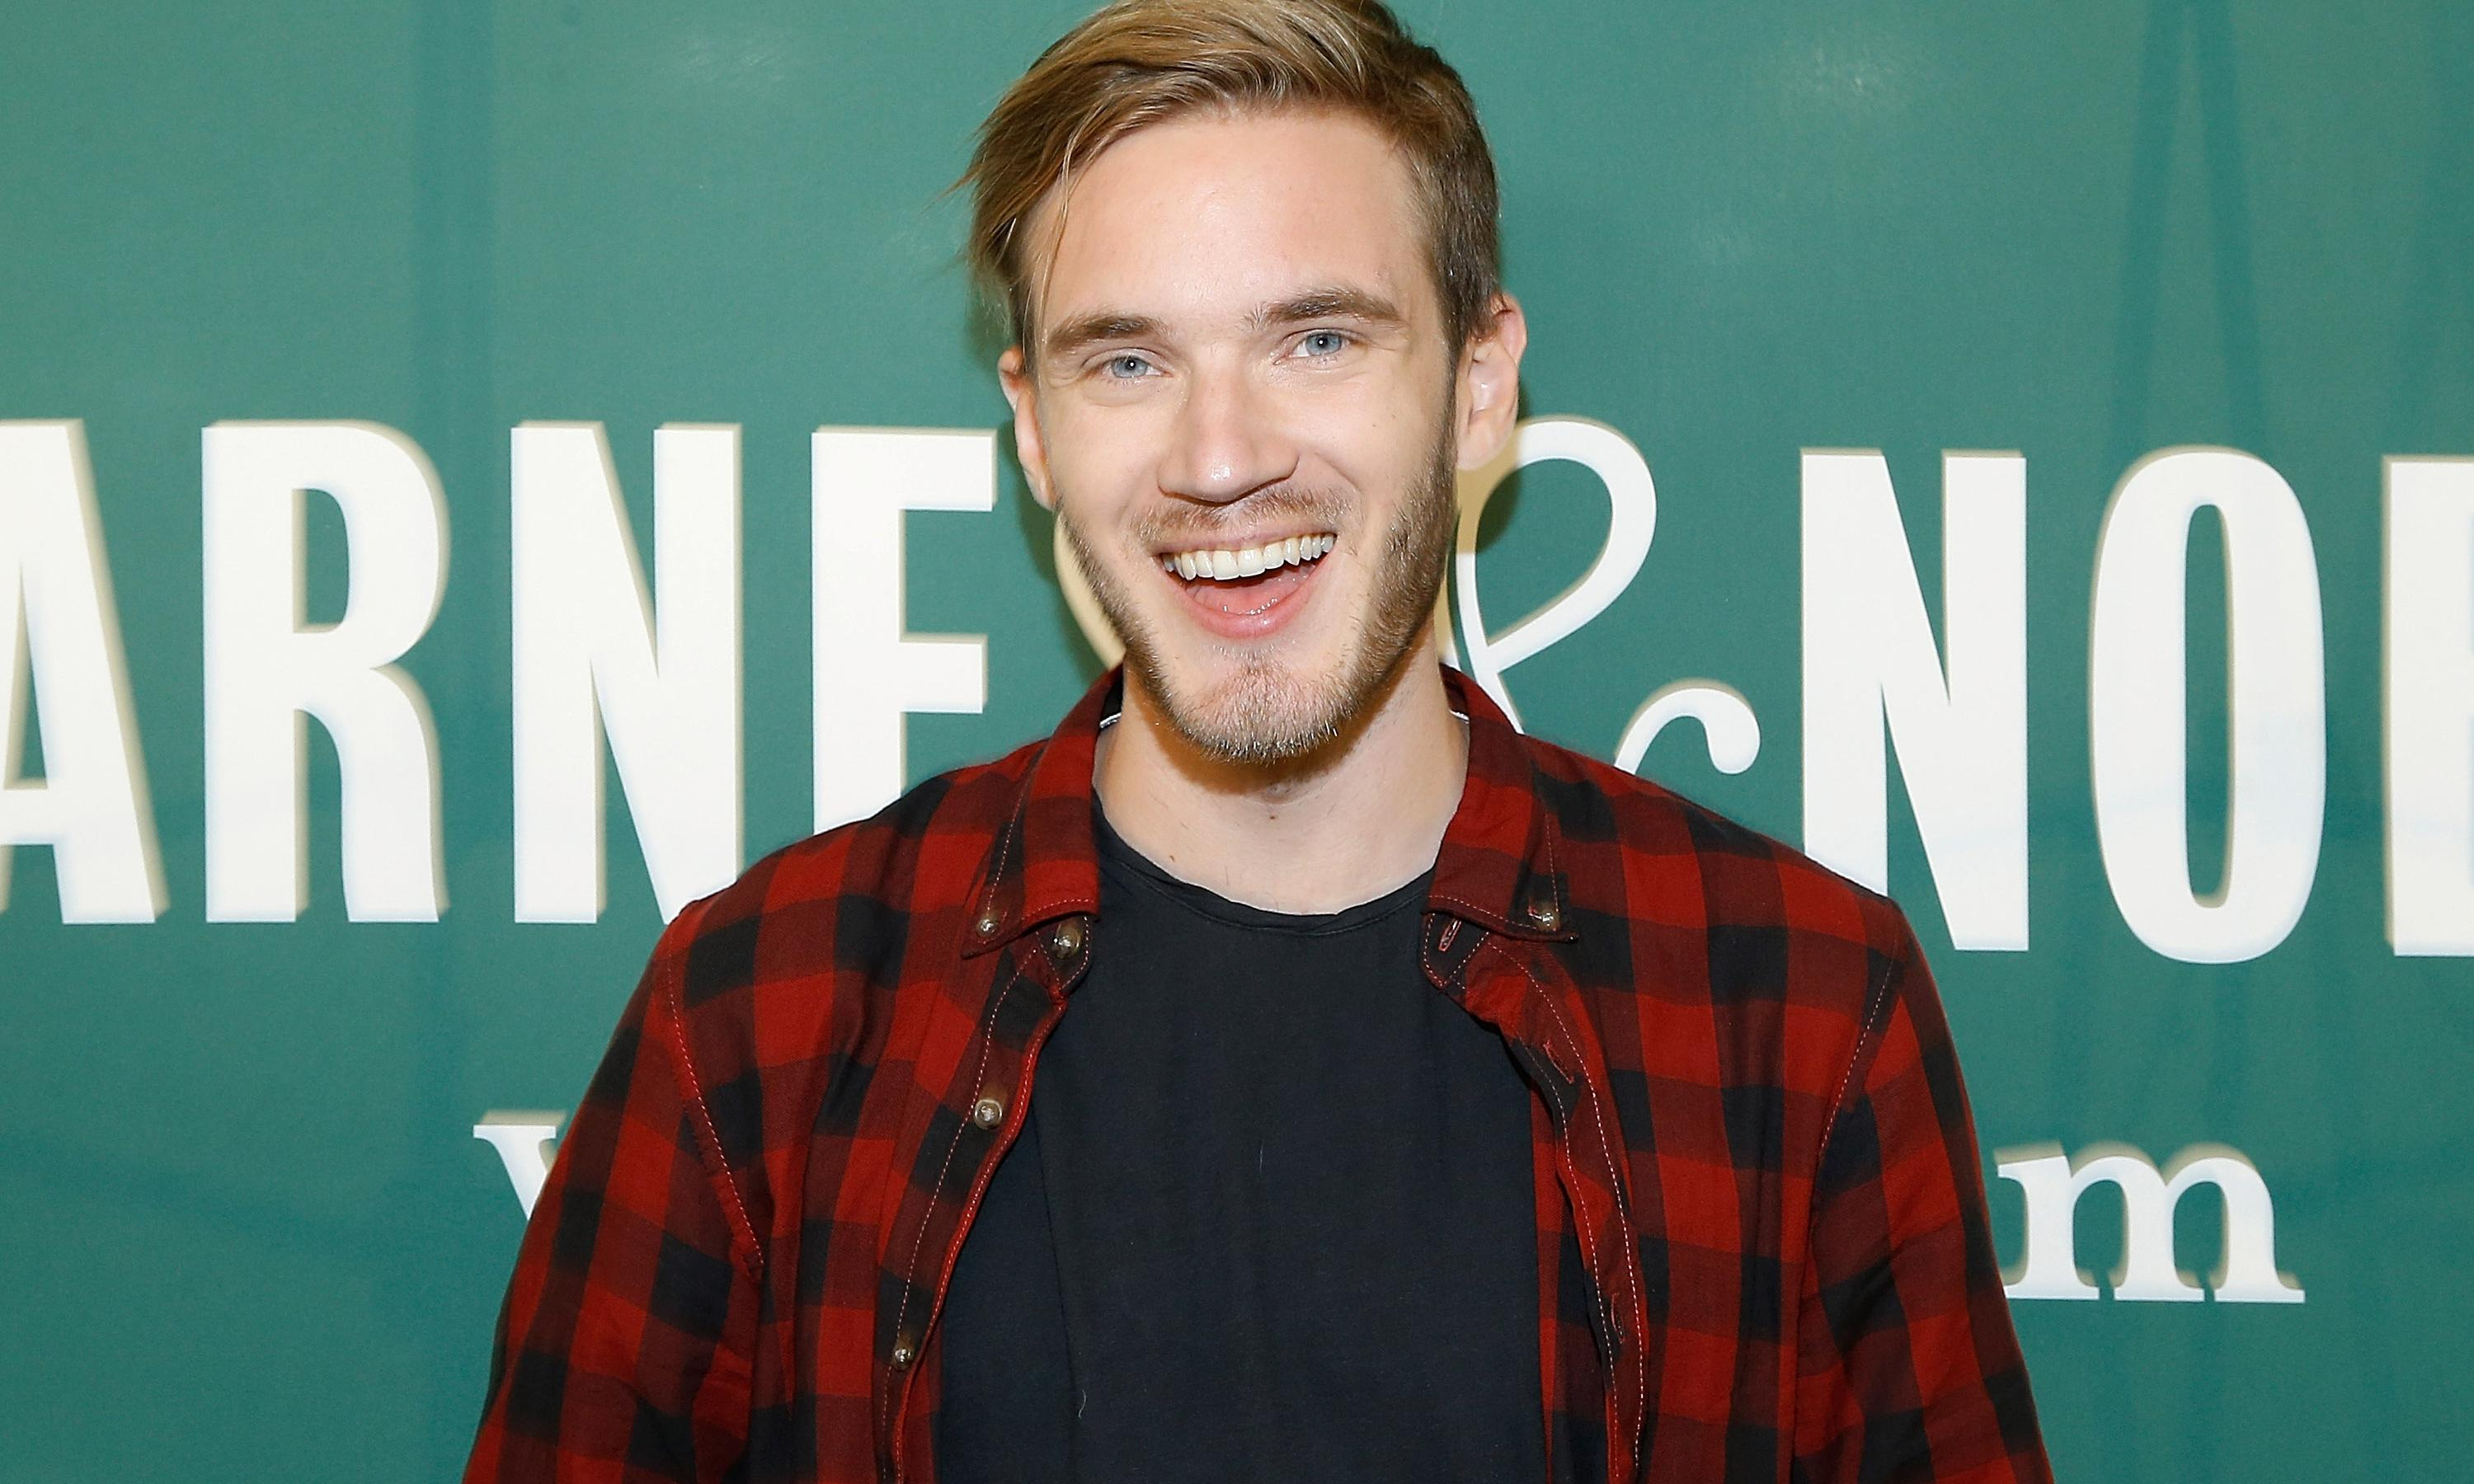 PewDiePie surpasses 100m subscriber mark on YouTube